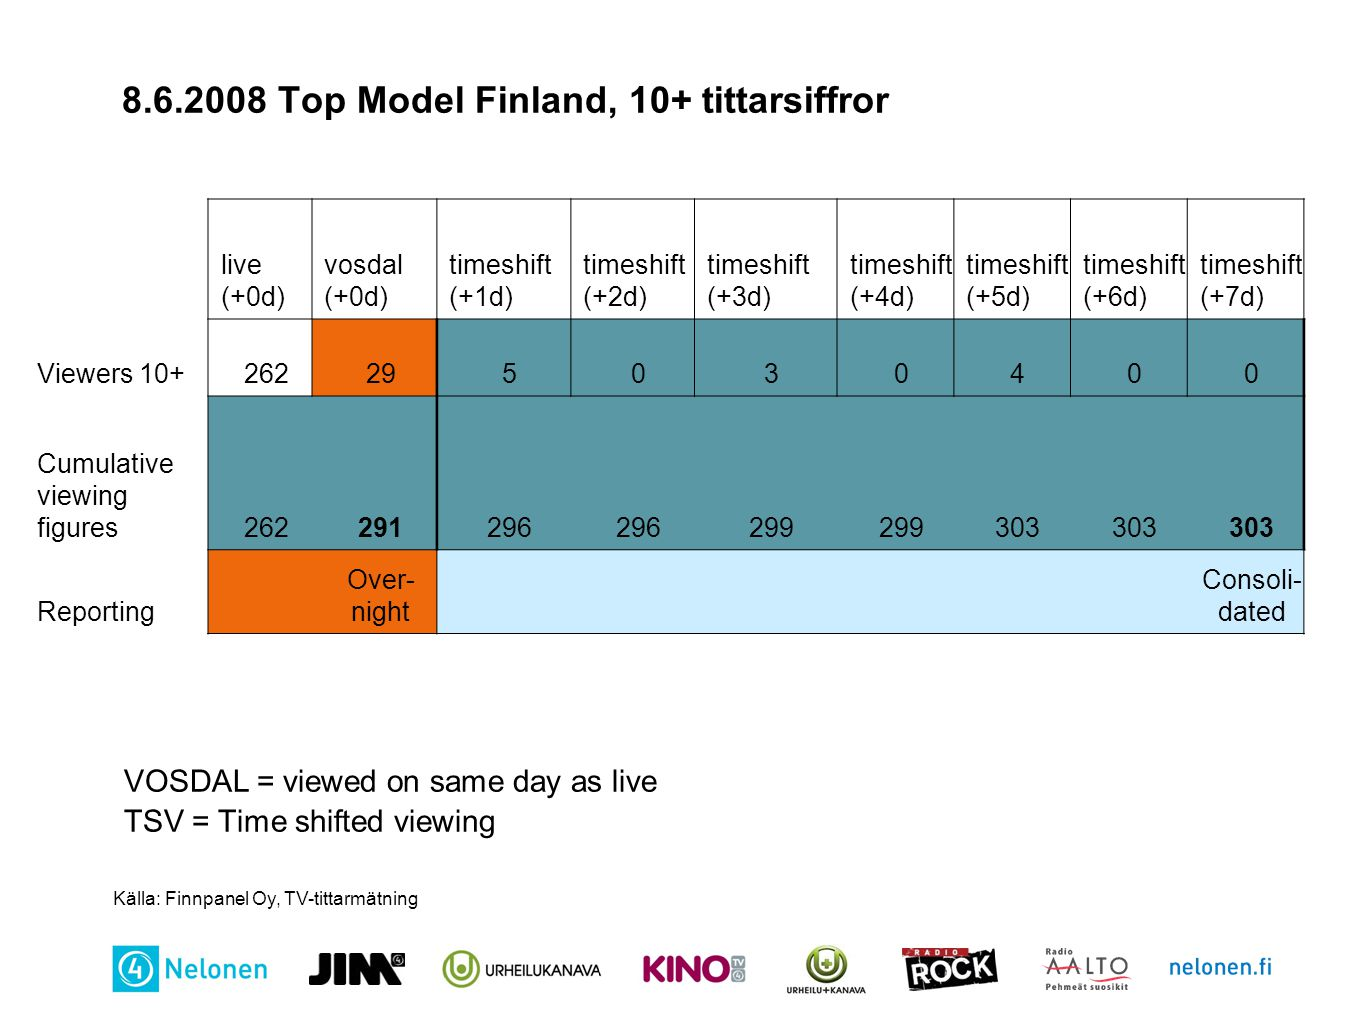 8.6.2008 Top Model Finland, 10+ tittarsiffror VOSDAL = viewed on same day as live TSV = Time shifted viewing live (+0d) vosdal (+0d) timeshift (+1d) timeshift (+2d) timeshift (+3d) timeshift (+4d) timeshift (+5d) timeshift (+6d) timeshift (+7d) Viewers 10+262295030400 Cumulative viewing figures262291296 299 303 Reporting Over- night Consoli- dated Källa: Finnpanel Oy, TV-tittarmätning